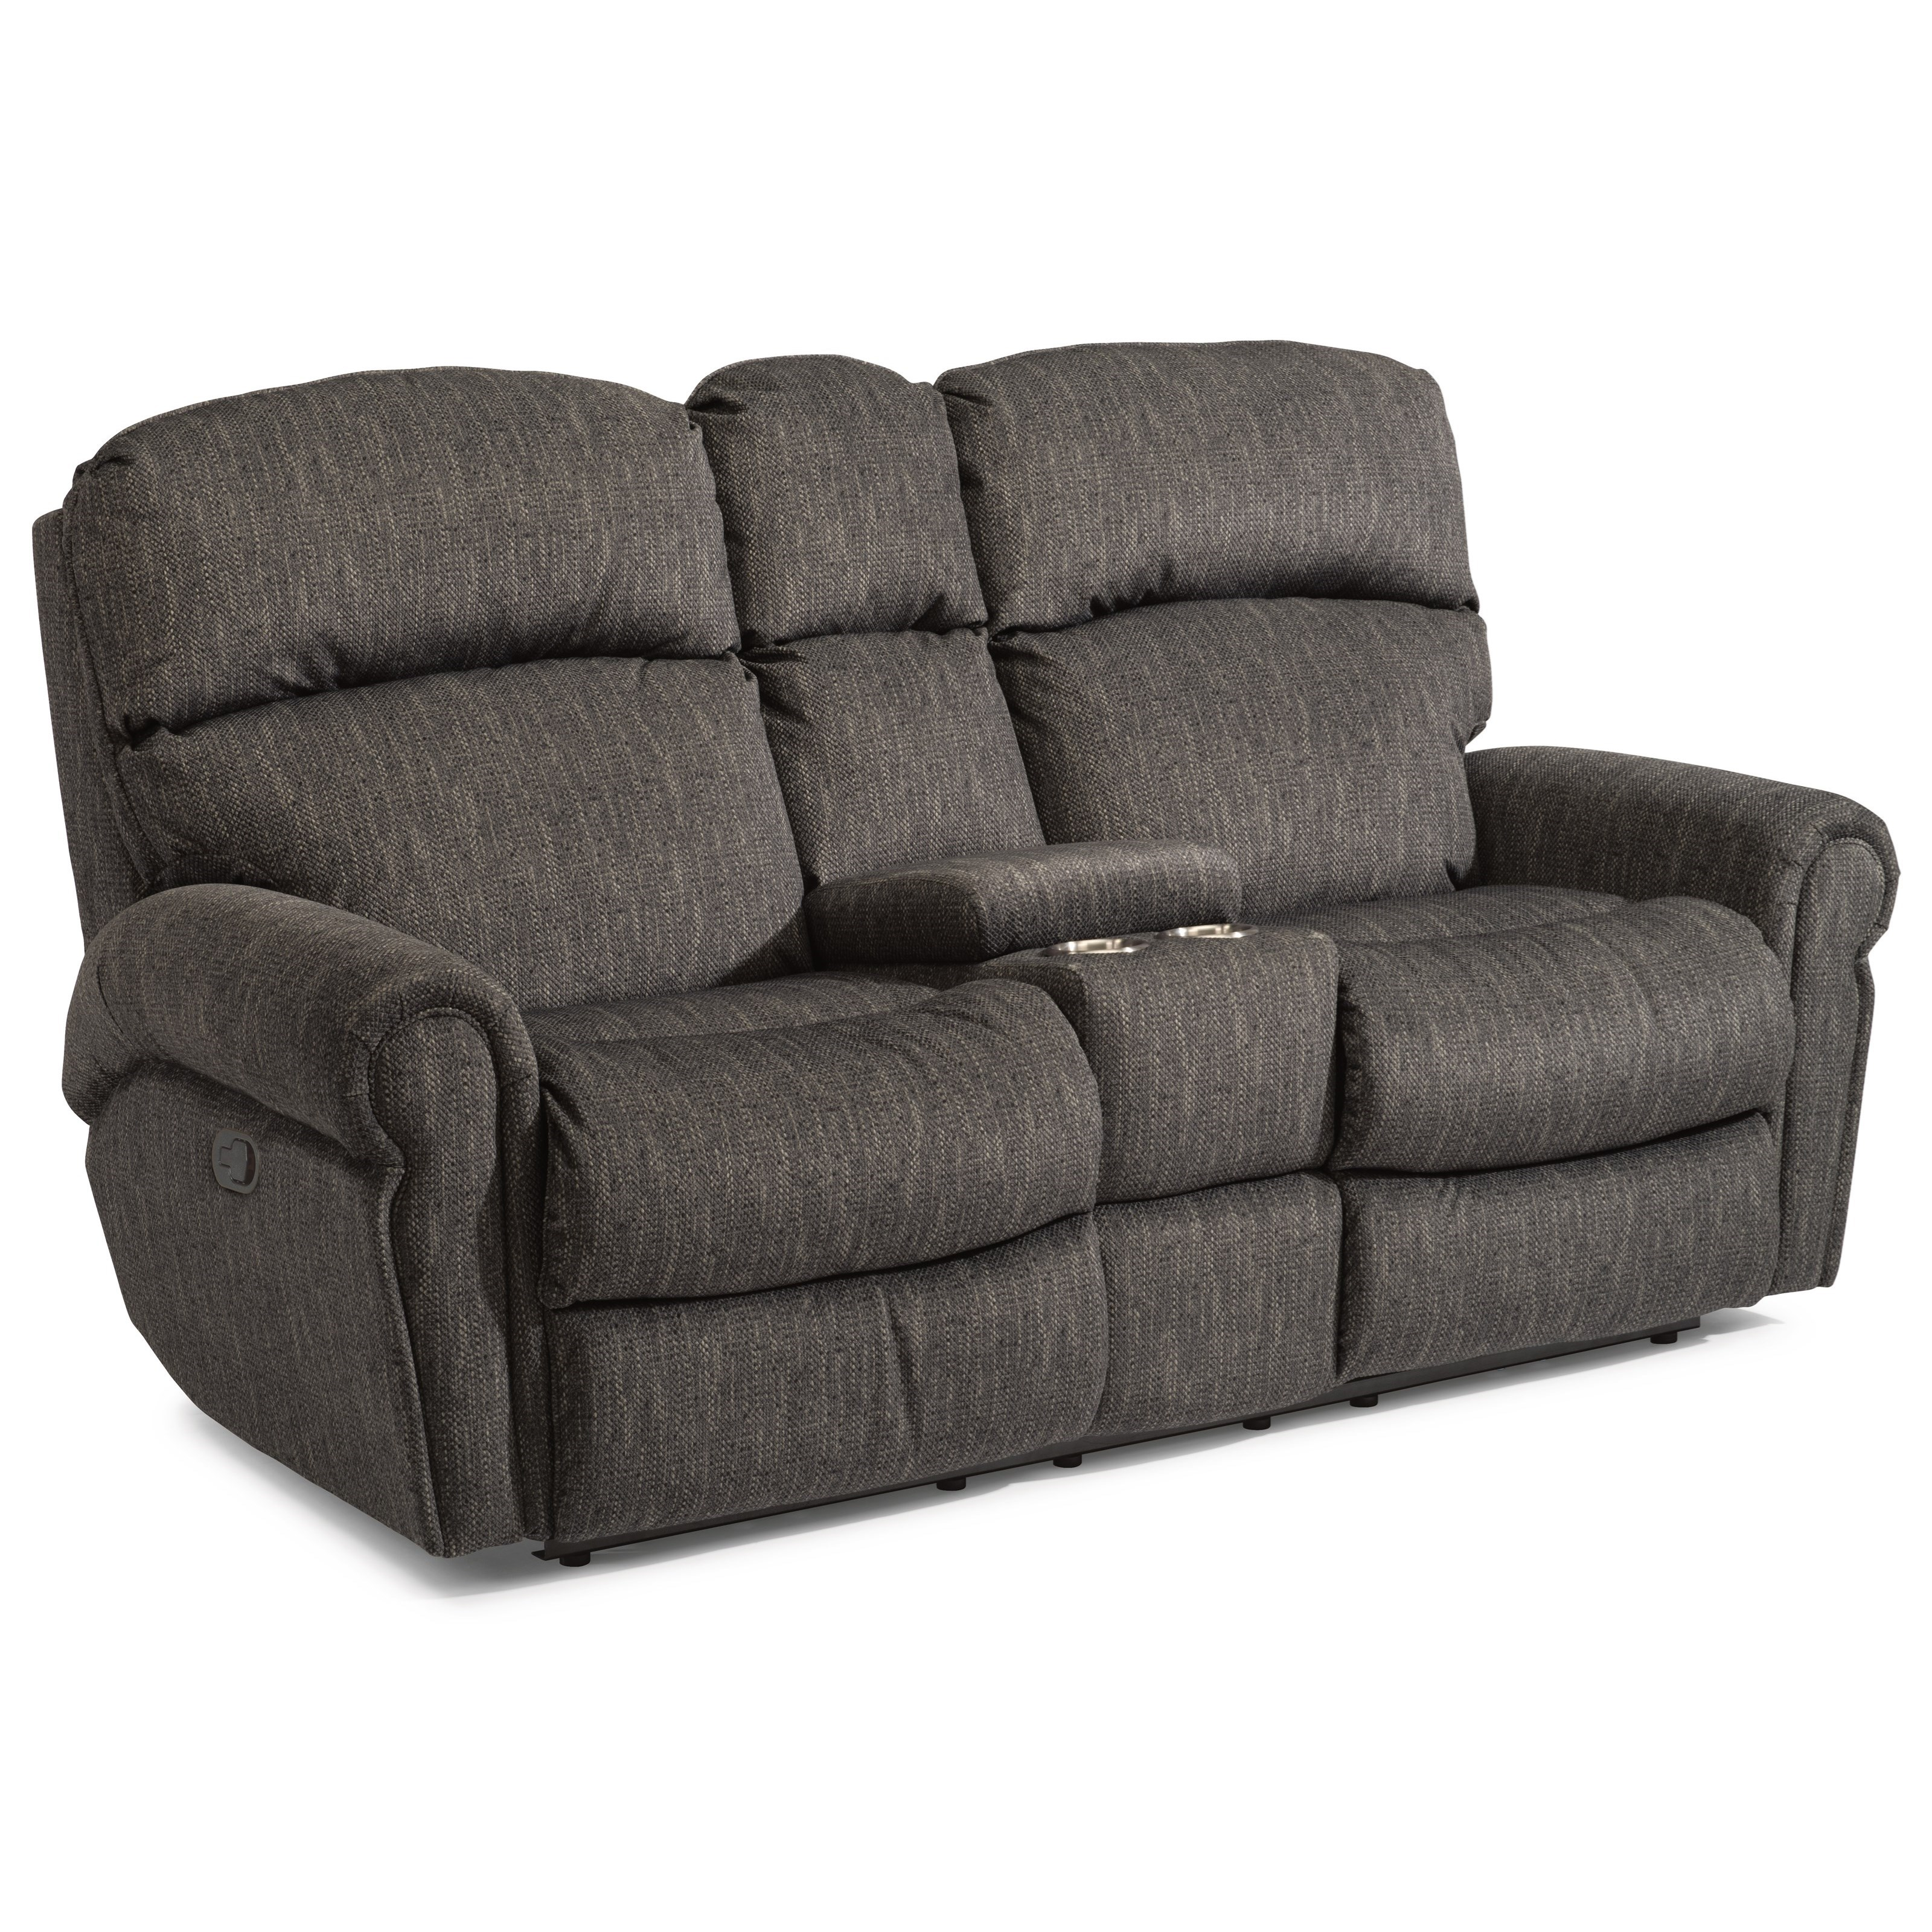 Flexsteel Langston Casual Reclining Love Seat With Storage